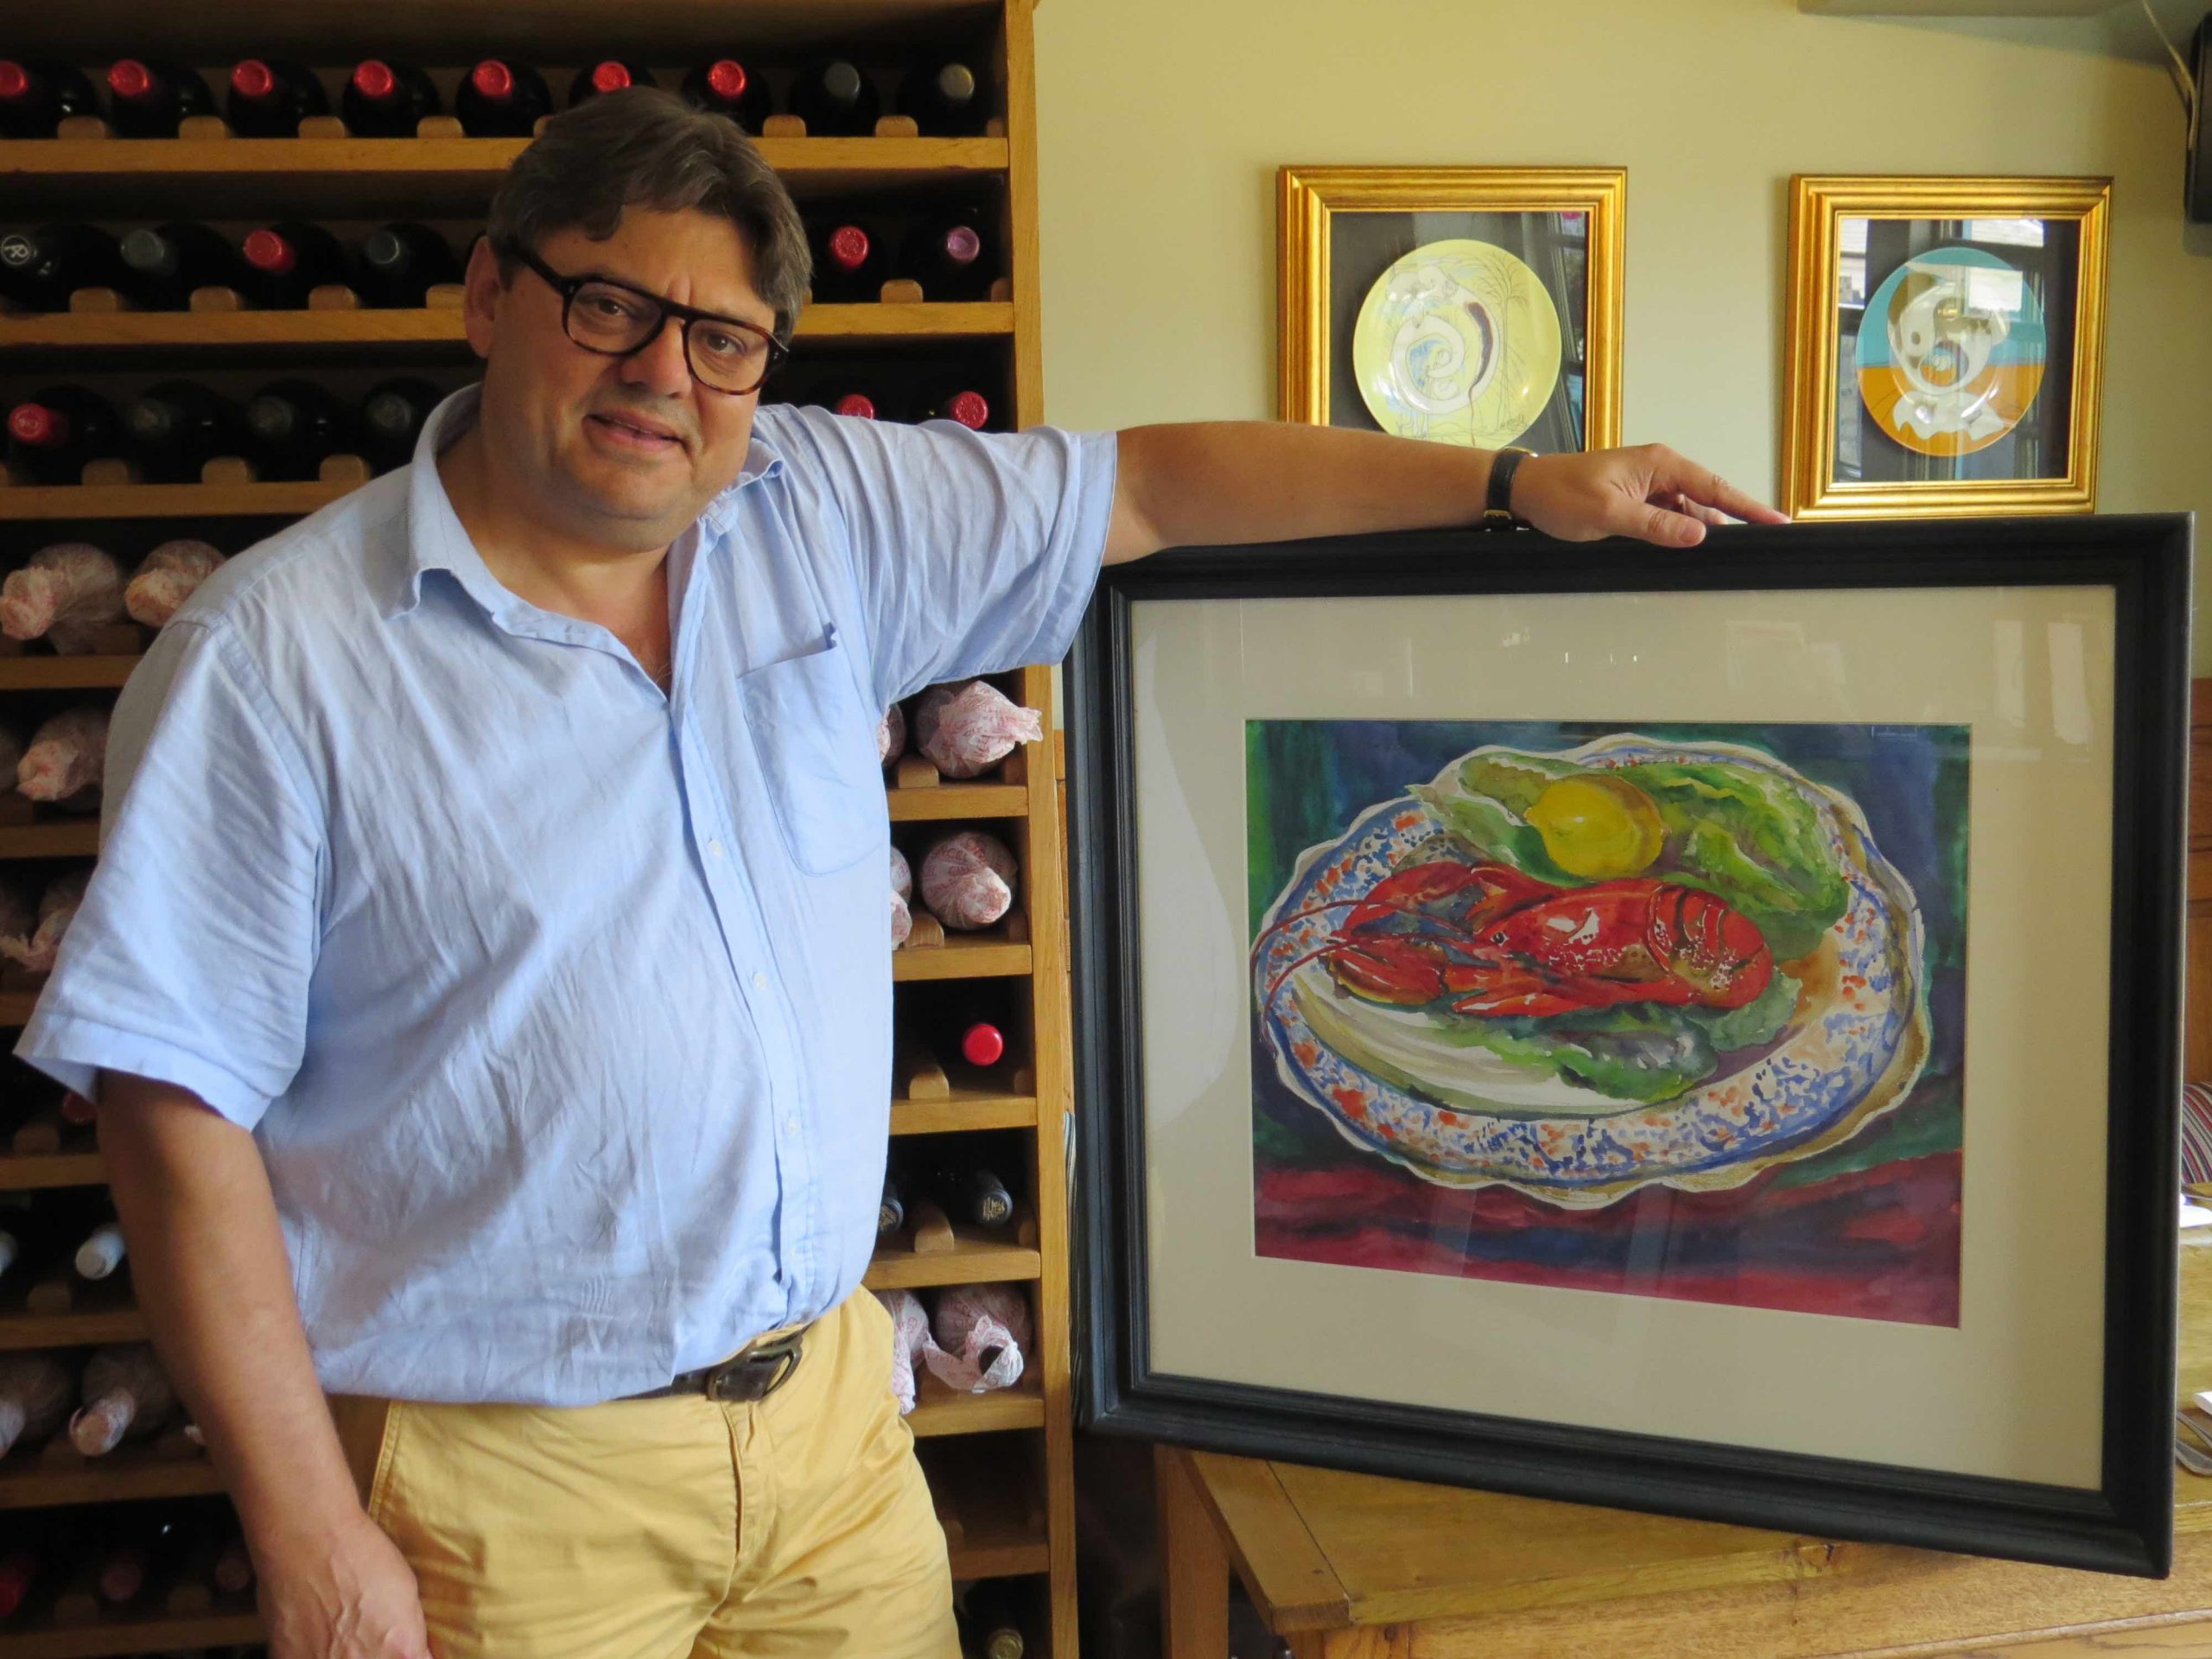 Ugur Vata and his lobster painting by Colin Moss